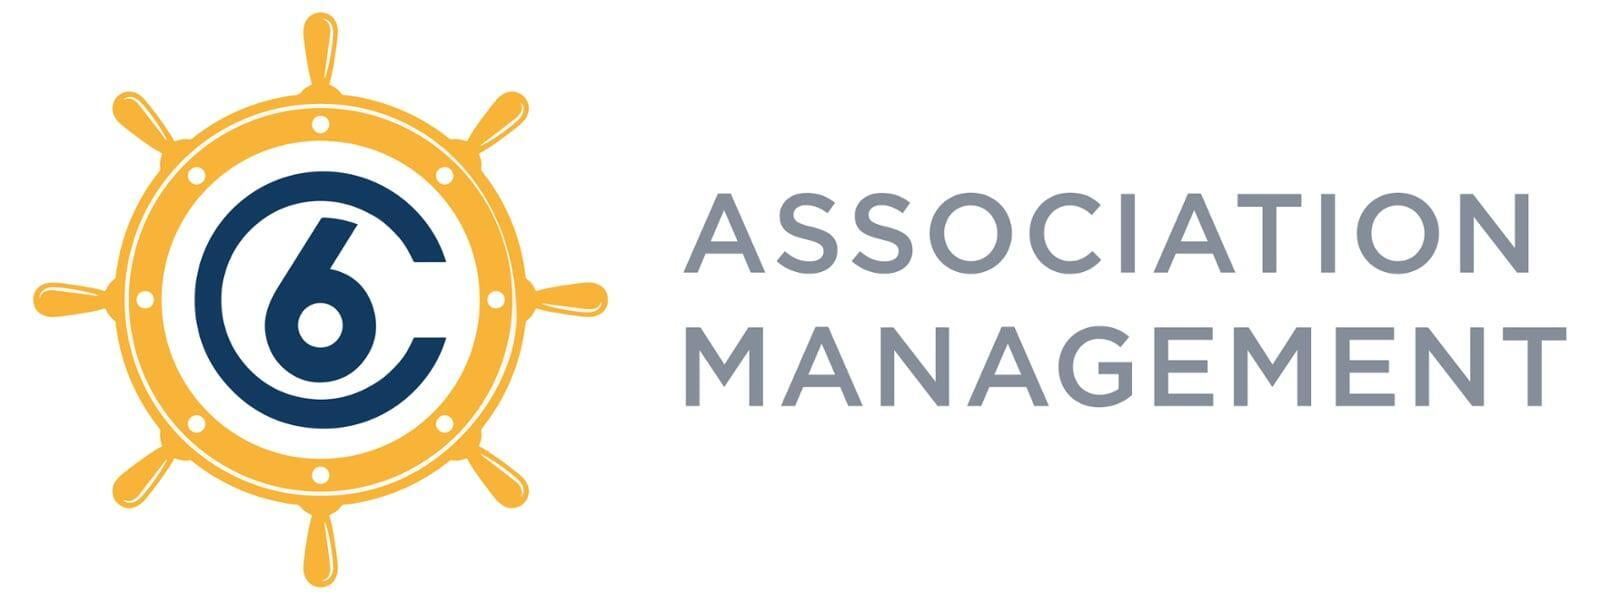 C6 Association Management